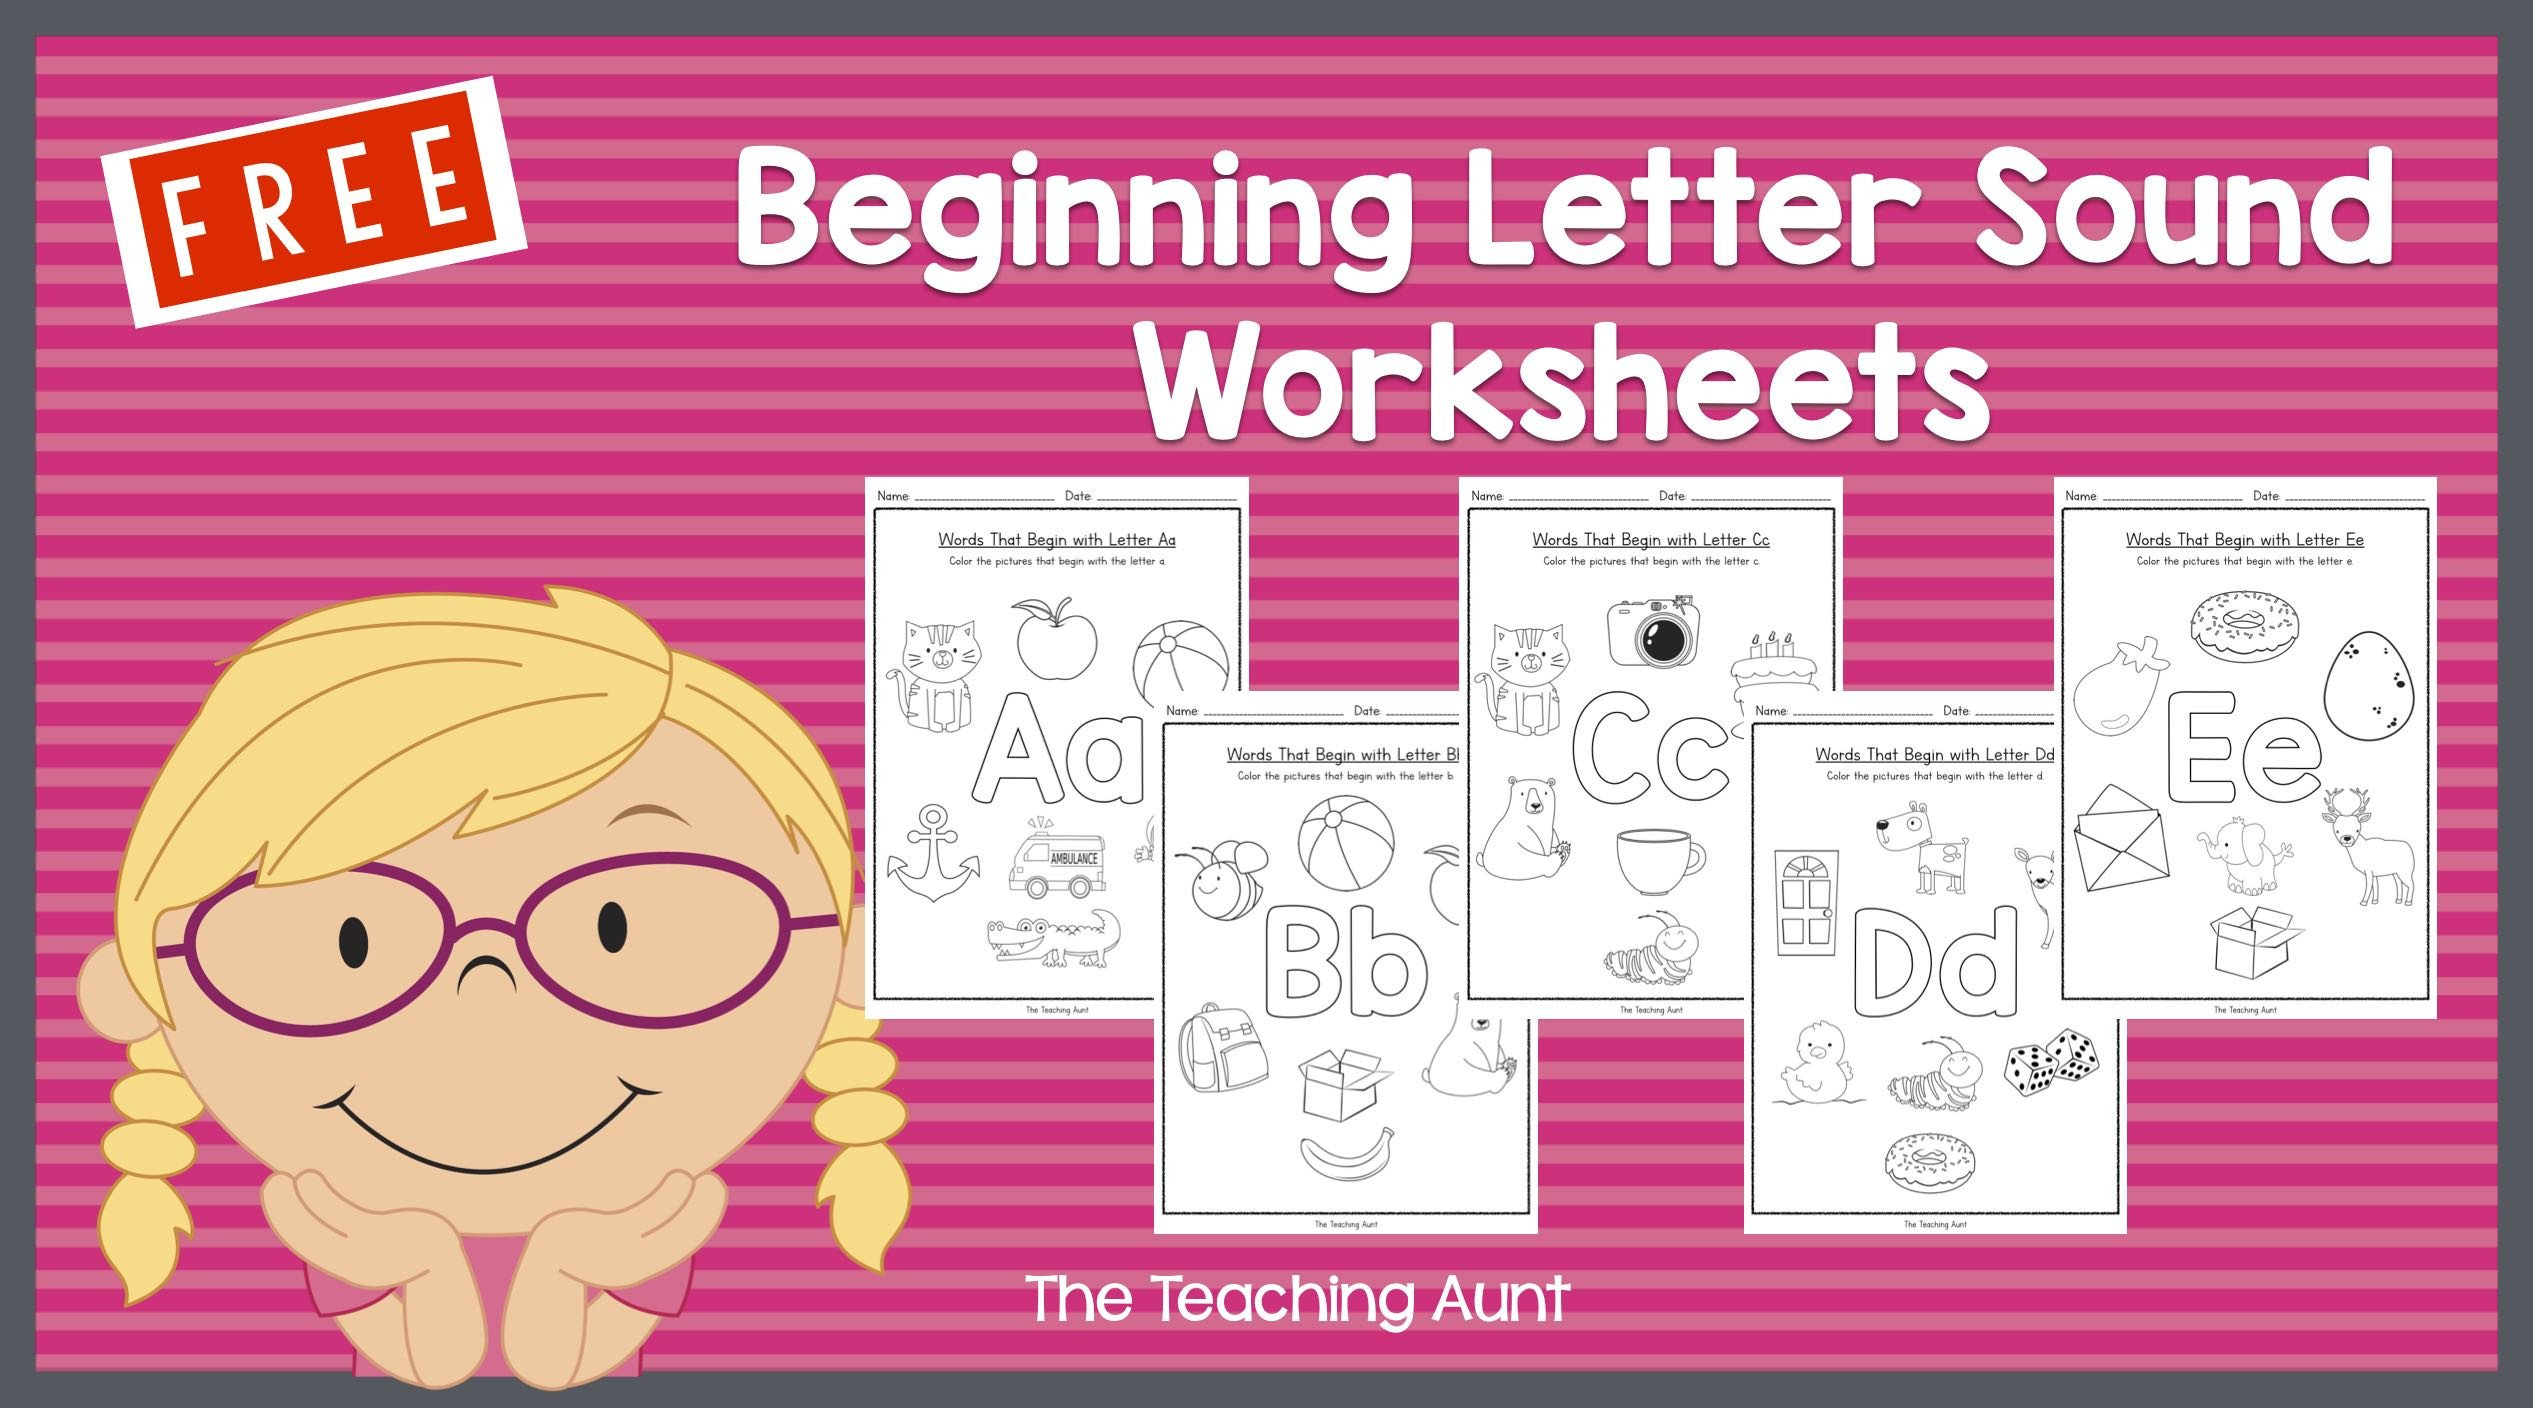 Letter sound Recognition Worksheets Free Beginning Letter sounds Worksheets the Teaching Aunt